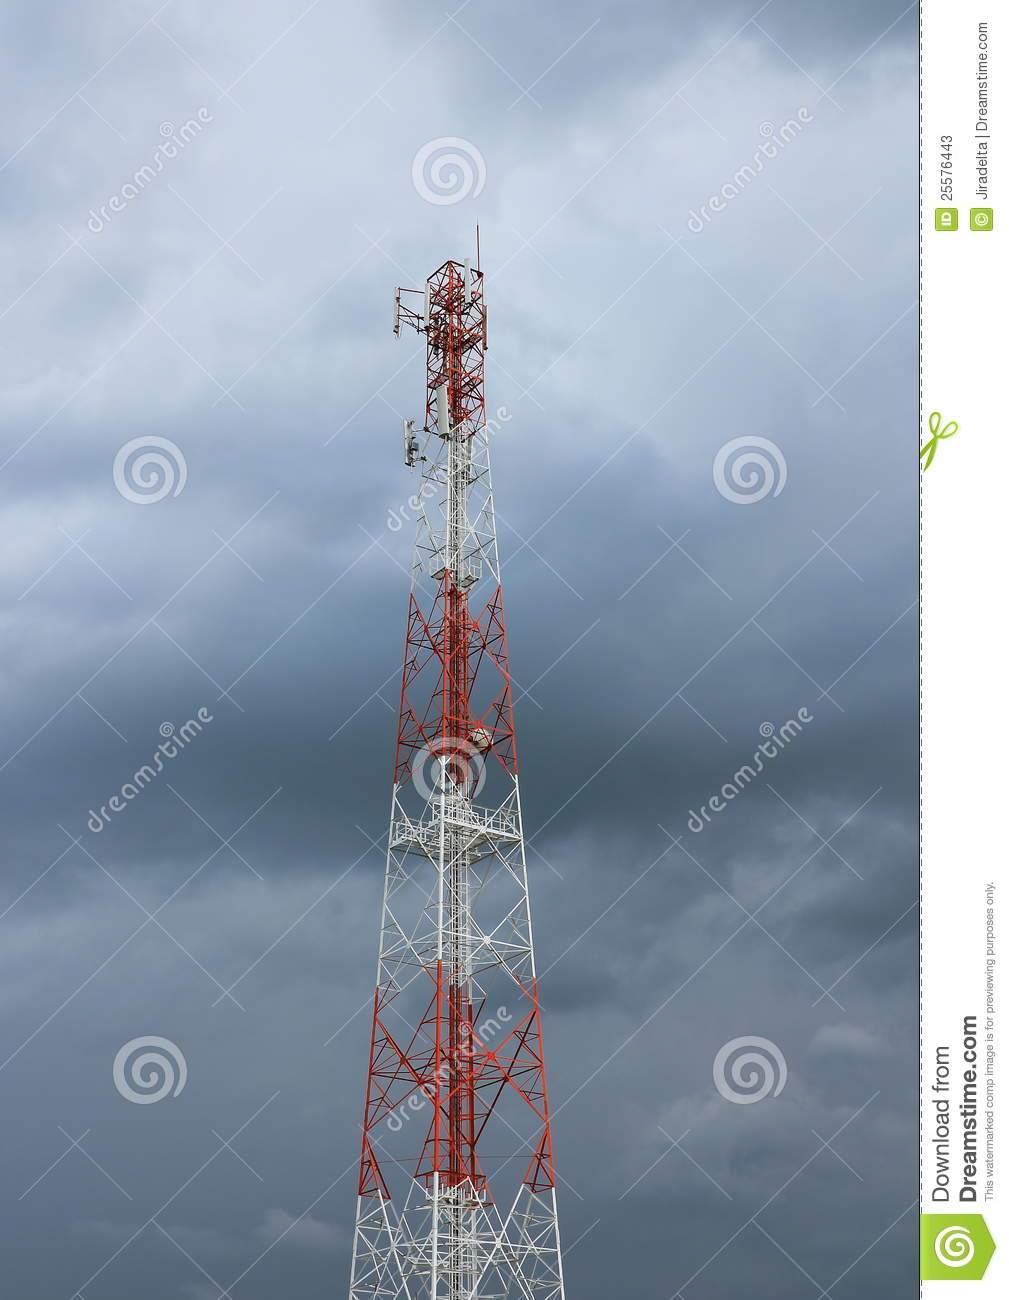 Telecommunication pole tower in cloudy sky